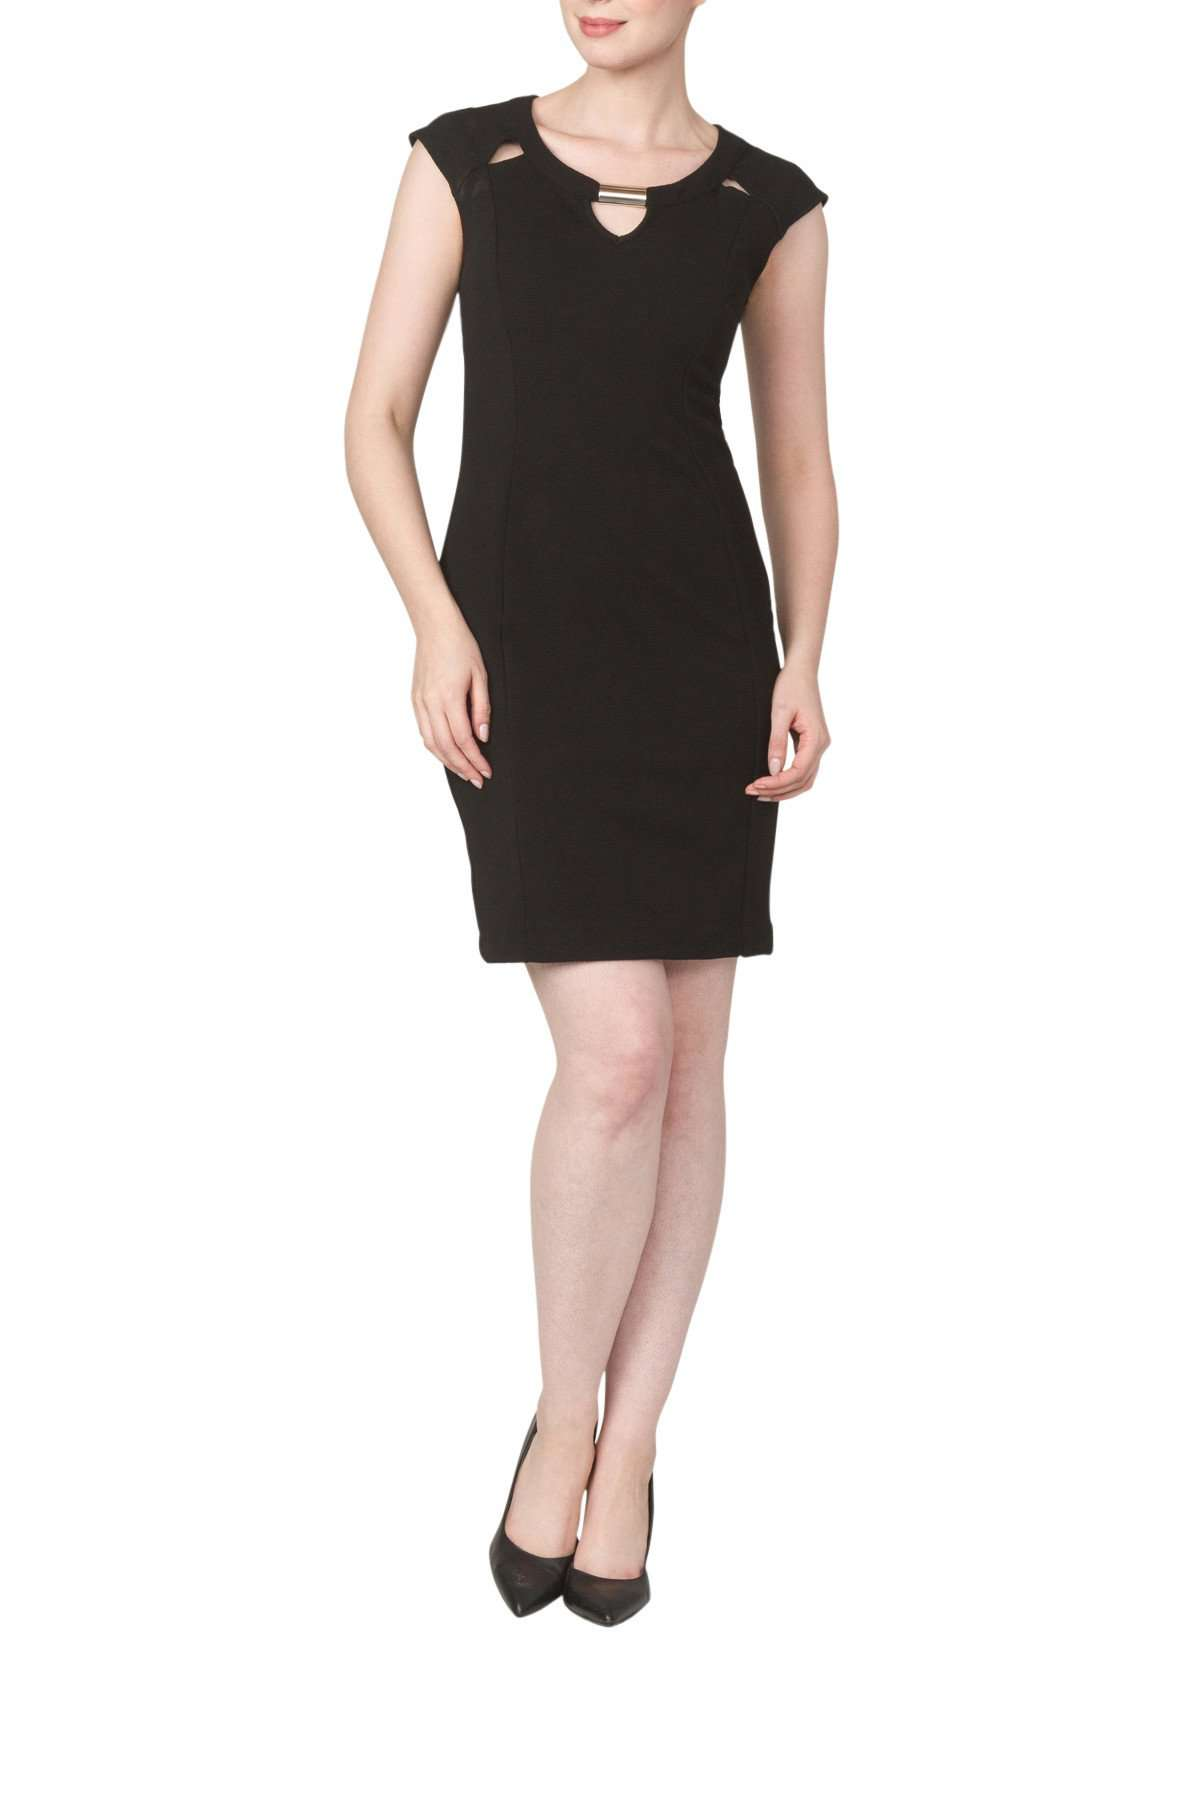 Women's Dresses Black Flattering Timeless Design - Made in Canada - Yvonne Marie - Yvonne Marie